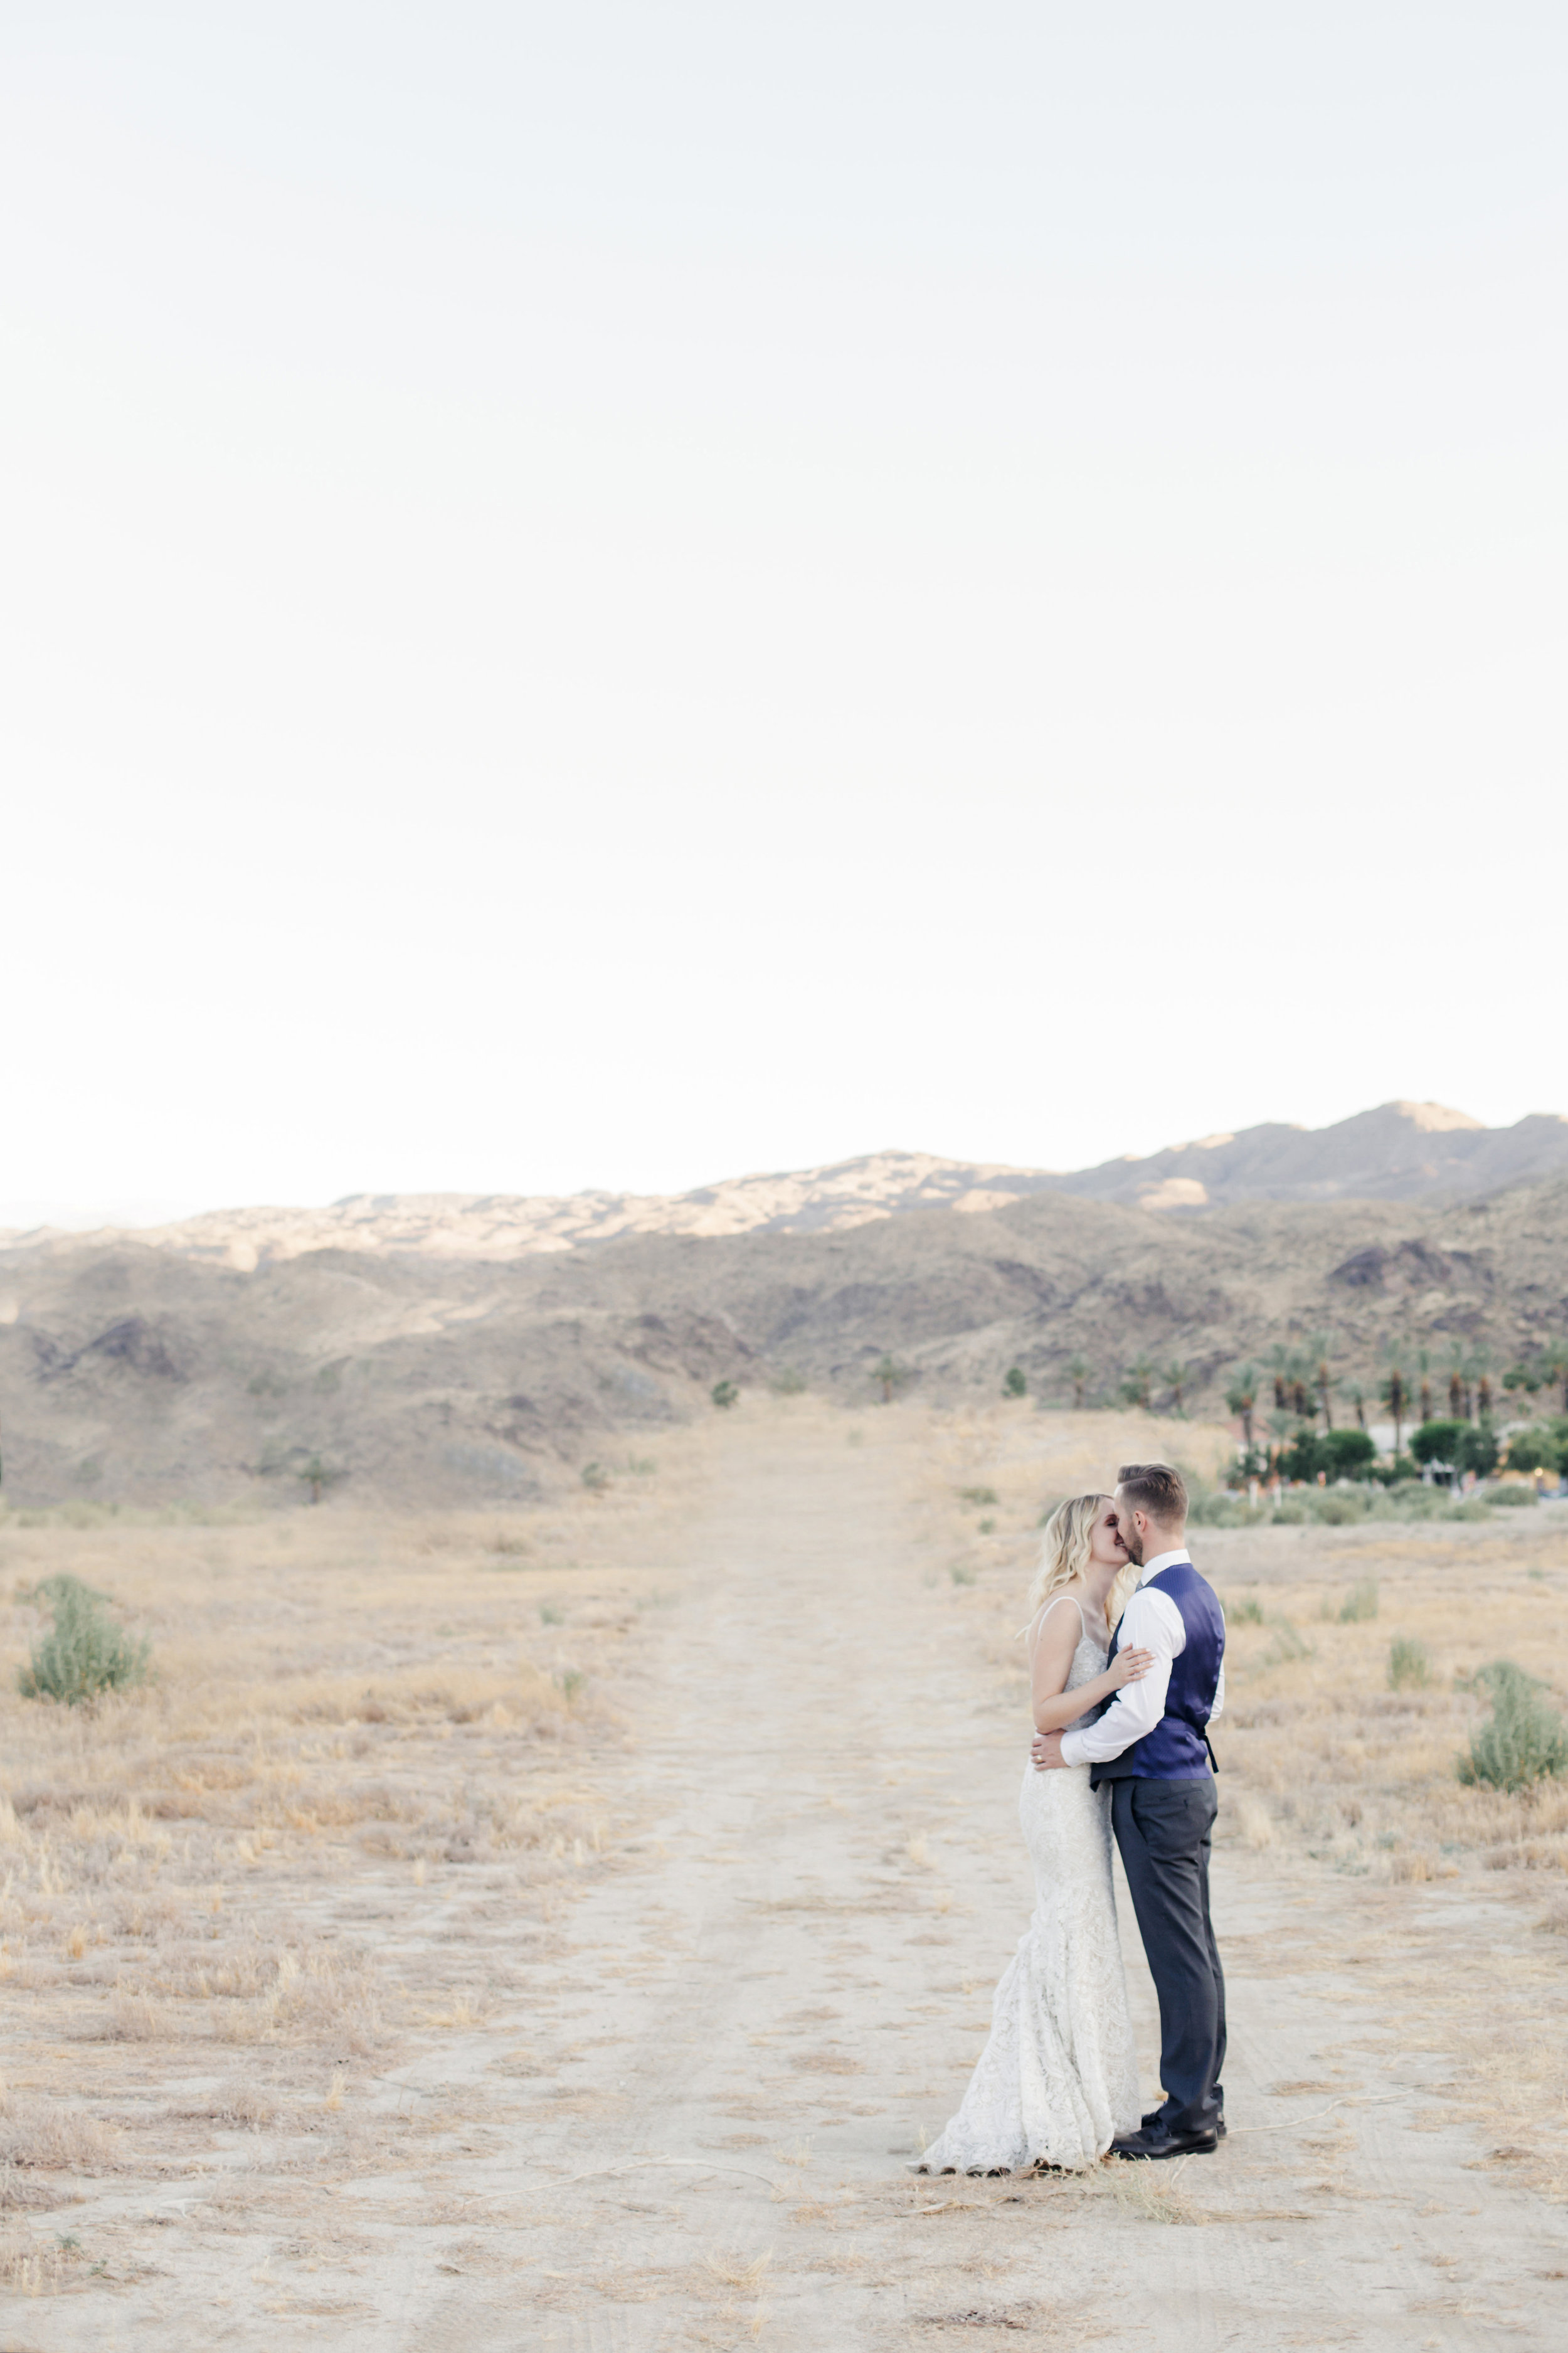 A Cree Estate Palm Springs Wedding - The Overwhelmed Bride Wedding Inspiration Blog